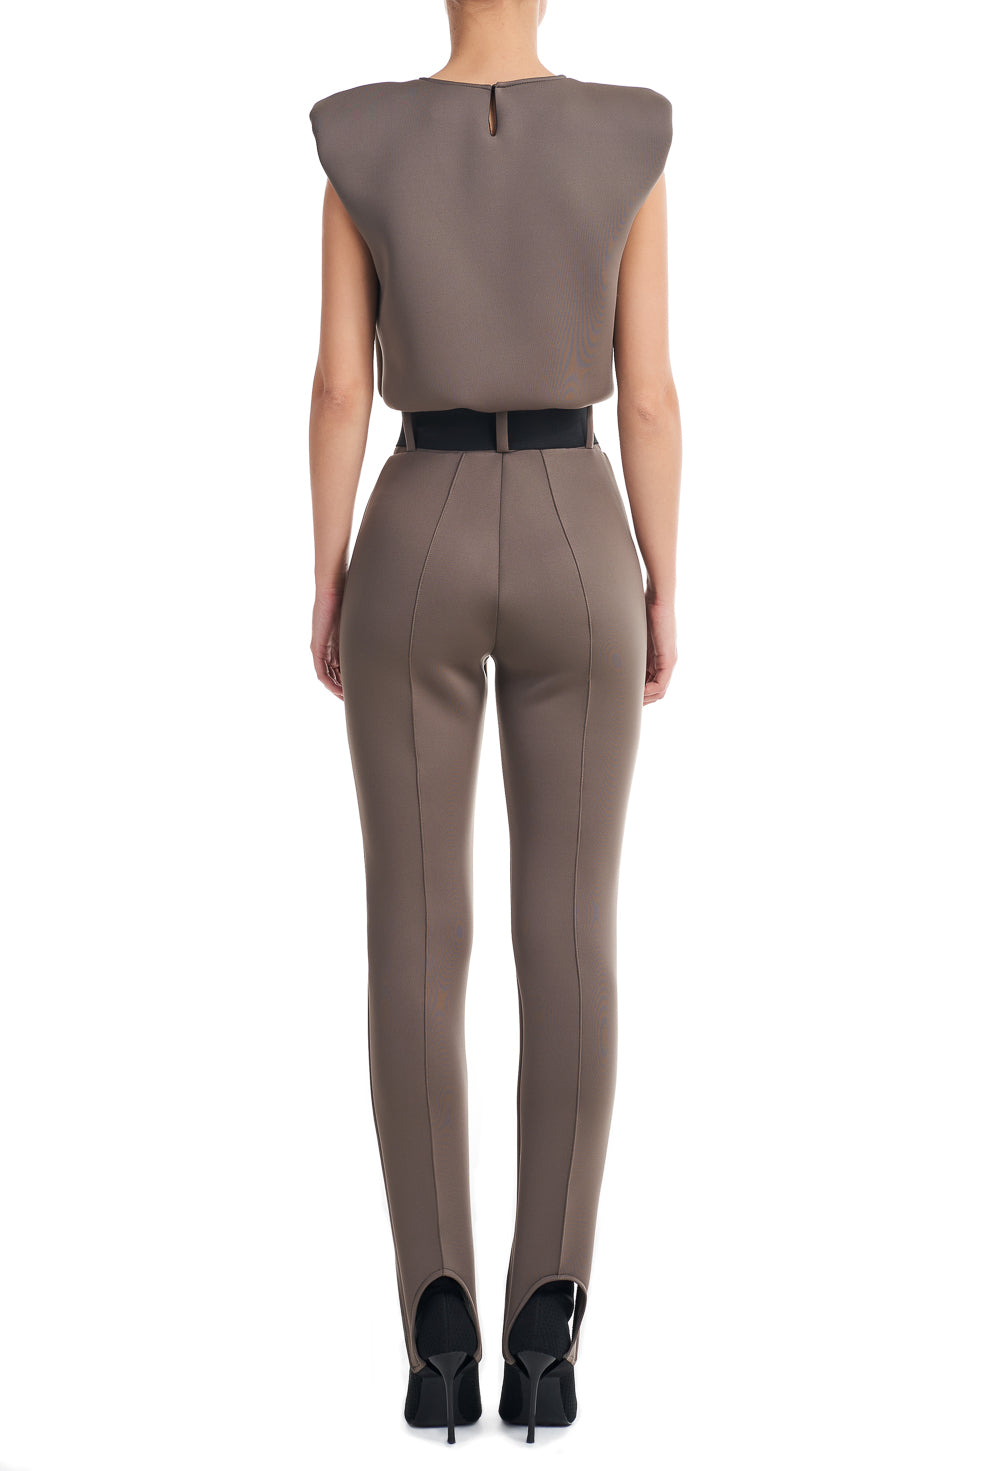 Simone khaki high waist belted Leggings